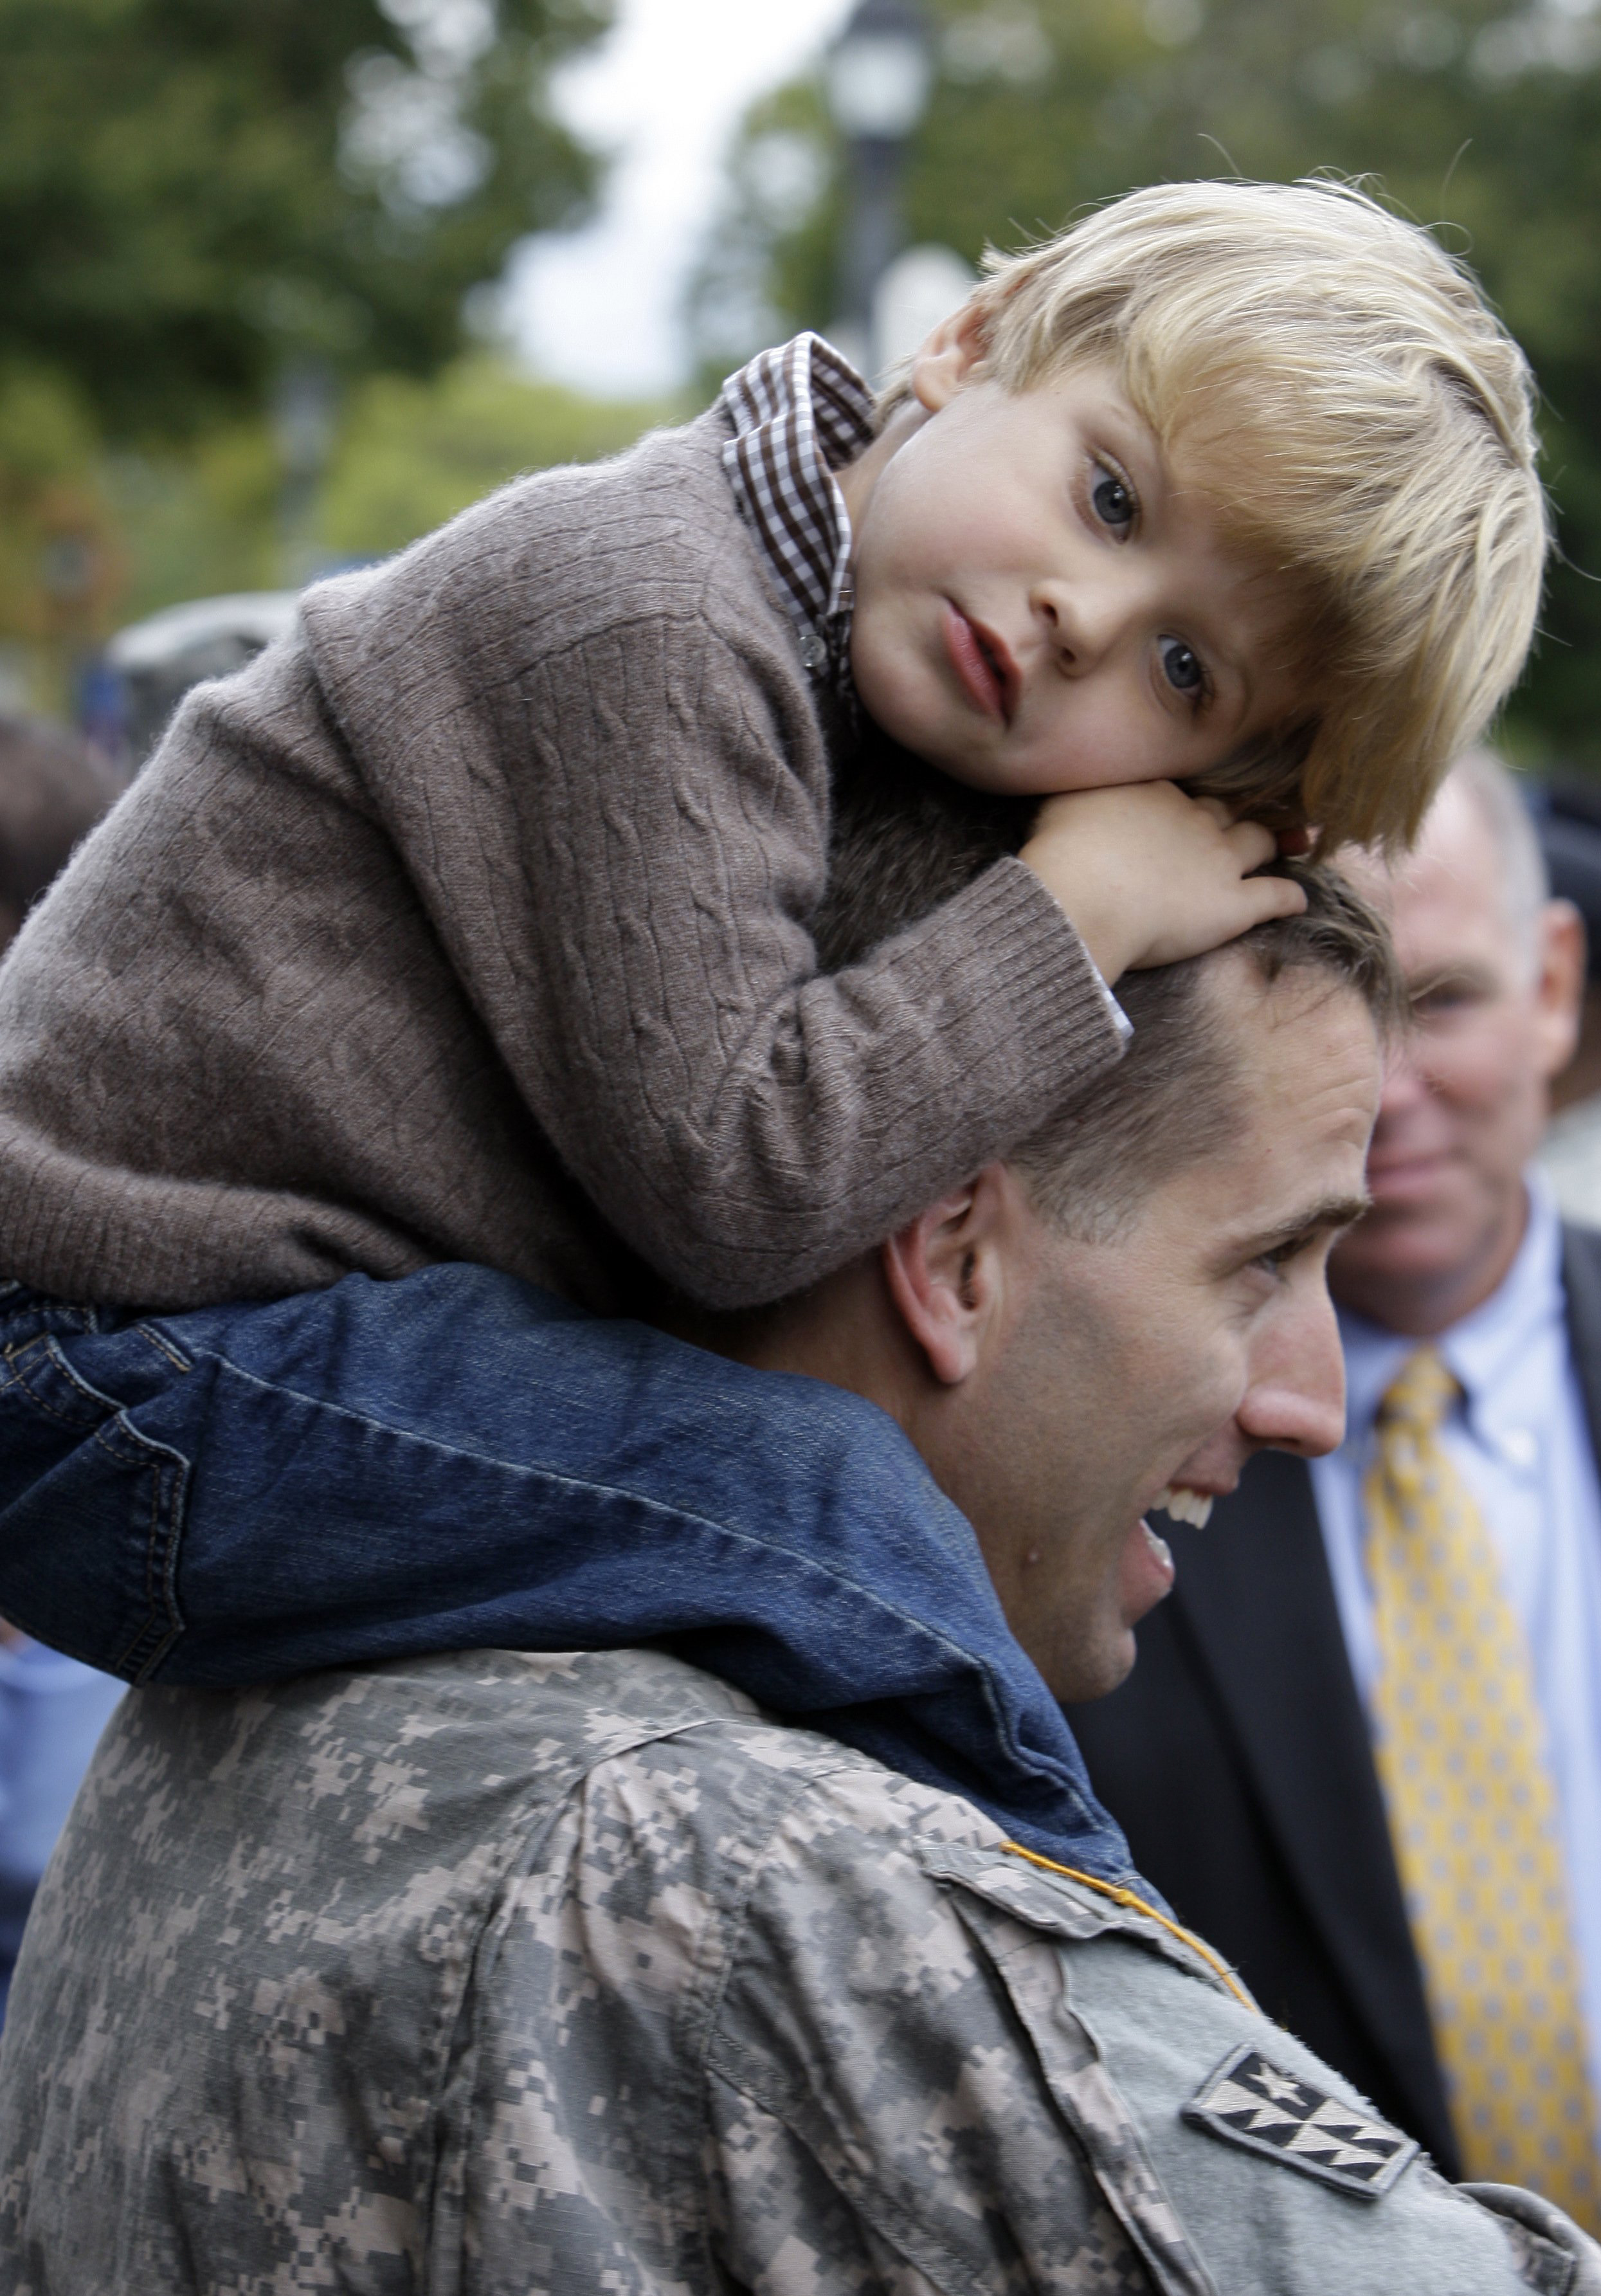 In this Sept. 30, 2009 file photo, Capt. Beau Biden carries his son Hunter, 3, on his shoulders after an official welcome home ceremony for members of the Delaware Army National Guard 261st Signal Brigade in Dover, Del.